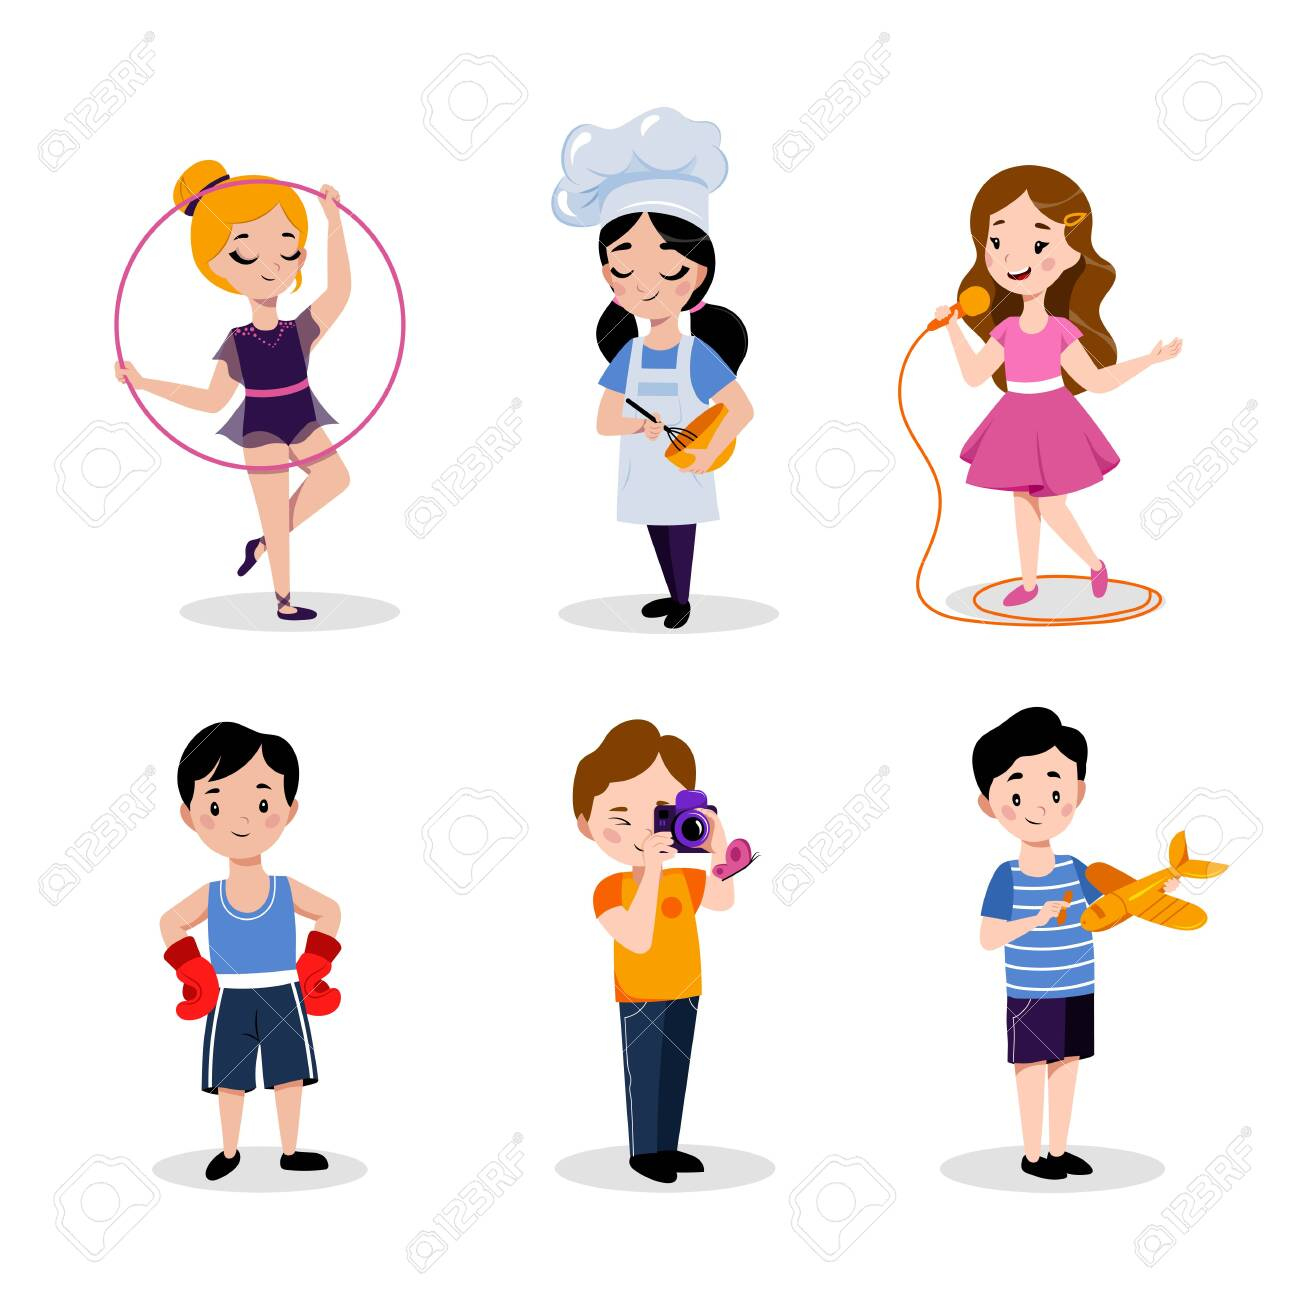 Children's hobby and education, vector flat cartoon illustration. Babies boys and girls isolated on white background. Kids leisure activities in kindergarten or preschool. - 131429929